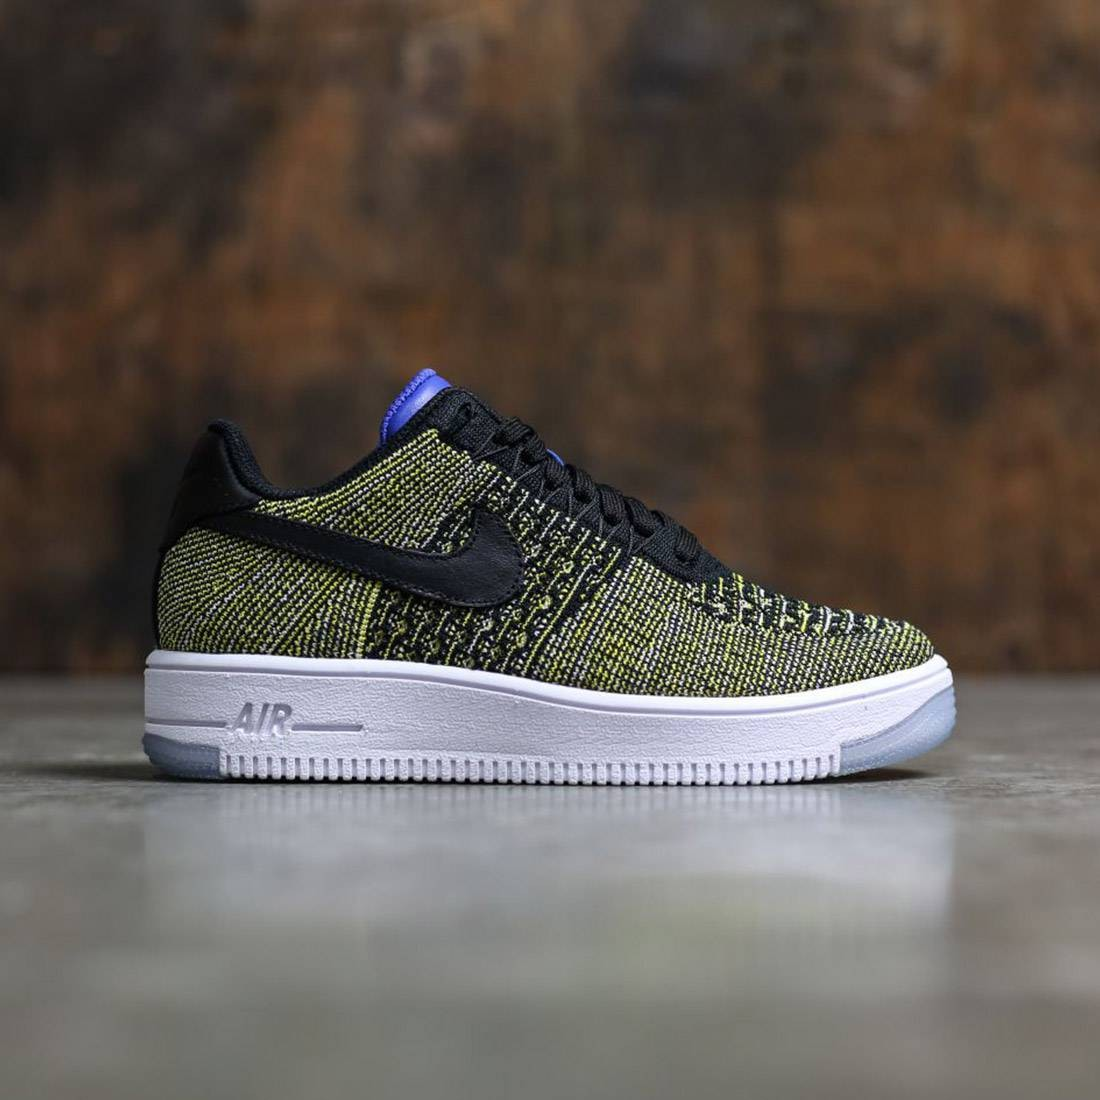 Nike Air Force 1 Flyknit marrone